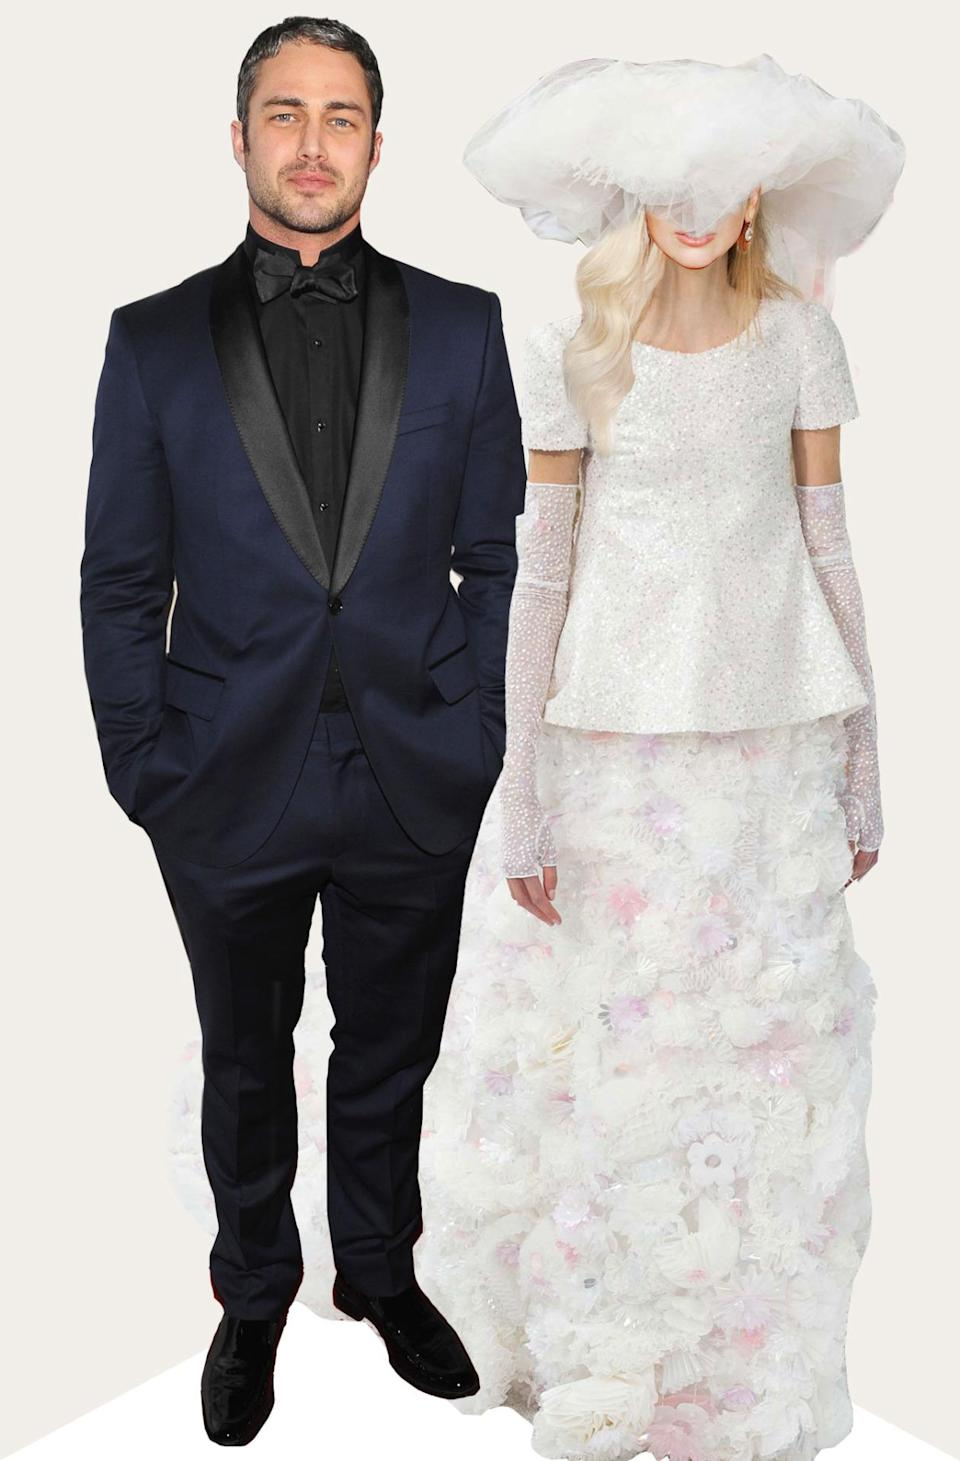 Gaga and the maestro Karl Lagerfeld have had a longtime relationship so it wouldn't be a surprise if the two cooked up a wedding dress like this Chanel Couture poufball fabulousness for the special day.